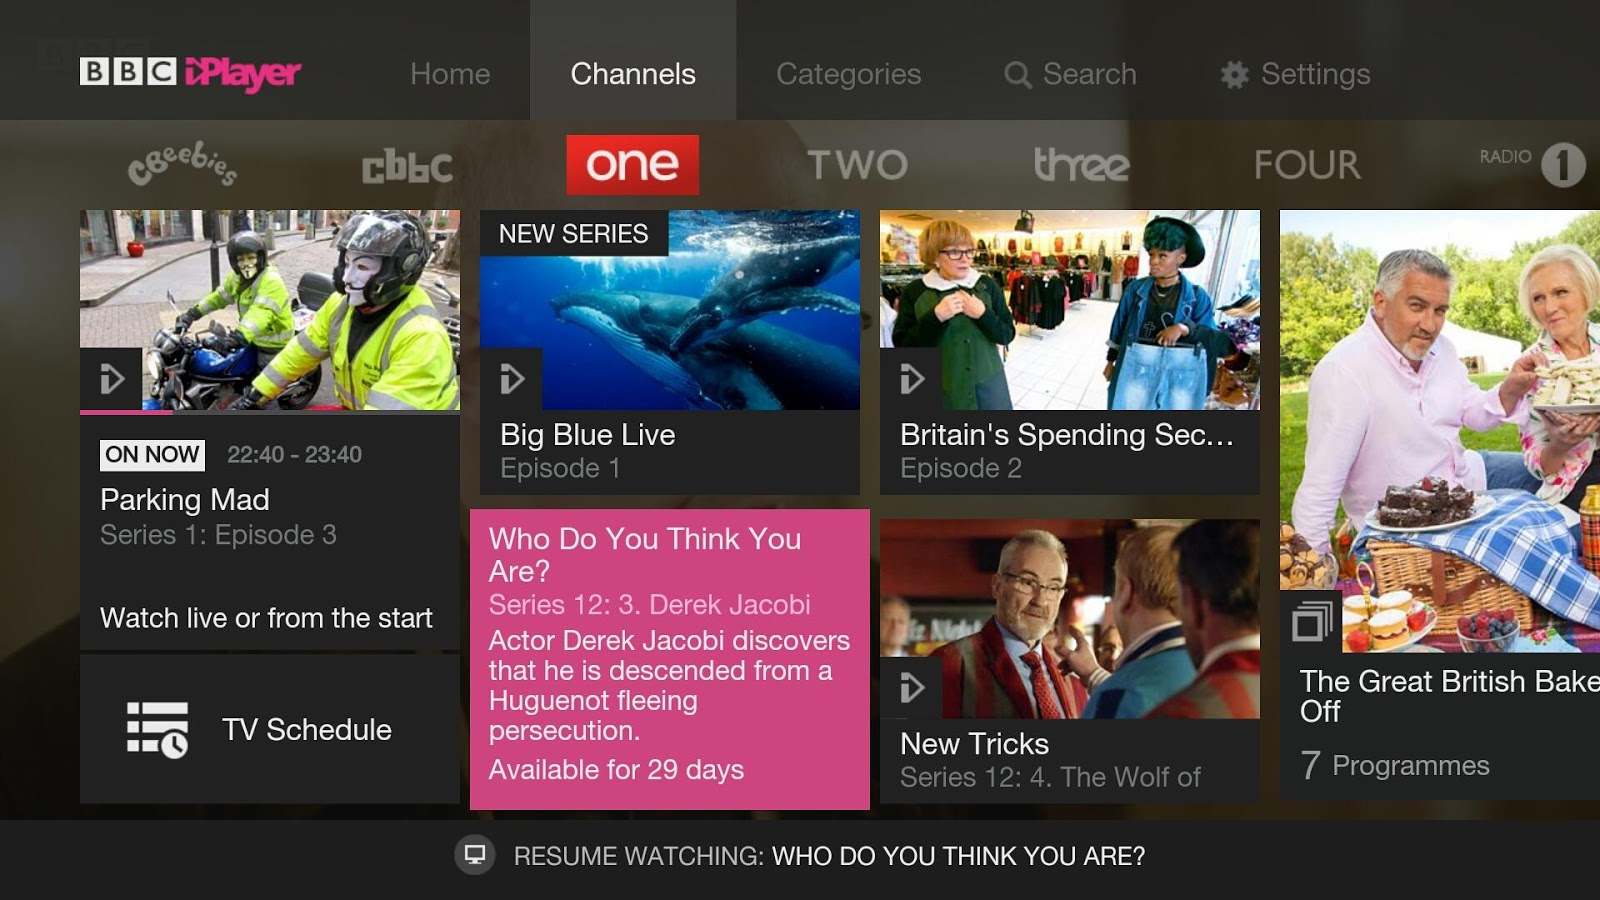 BBC And NVIDIA Release An iPlayer App Exclusively For SHIELD